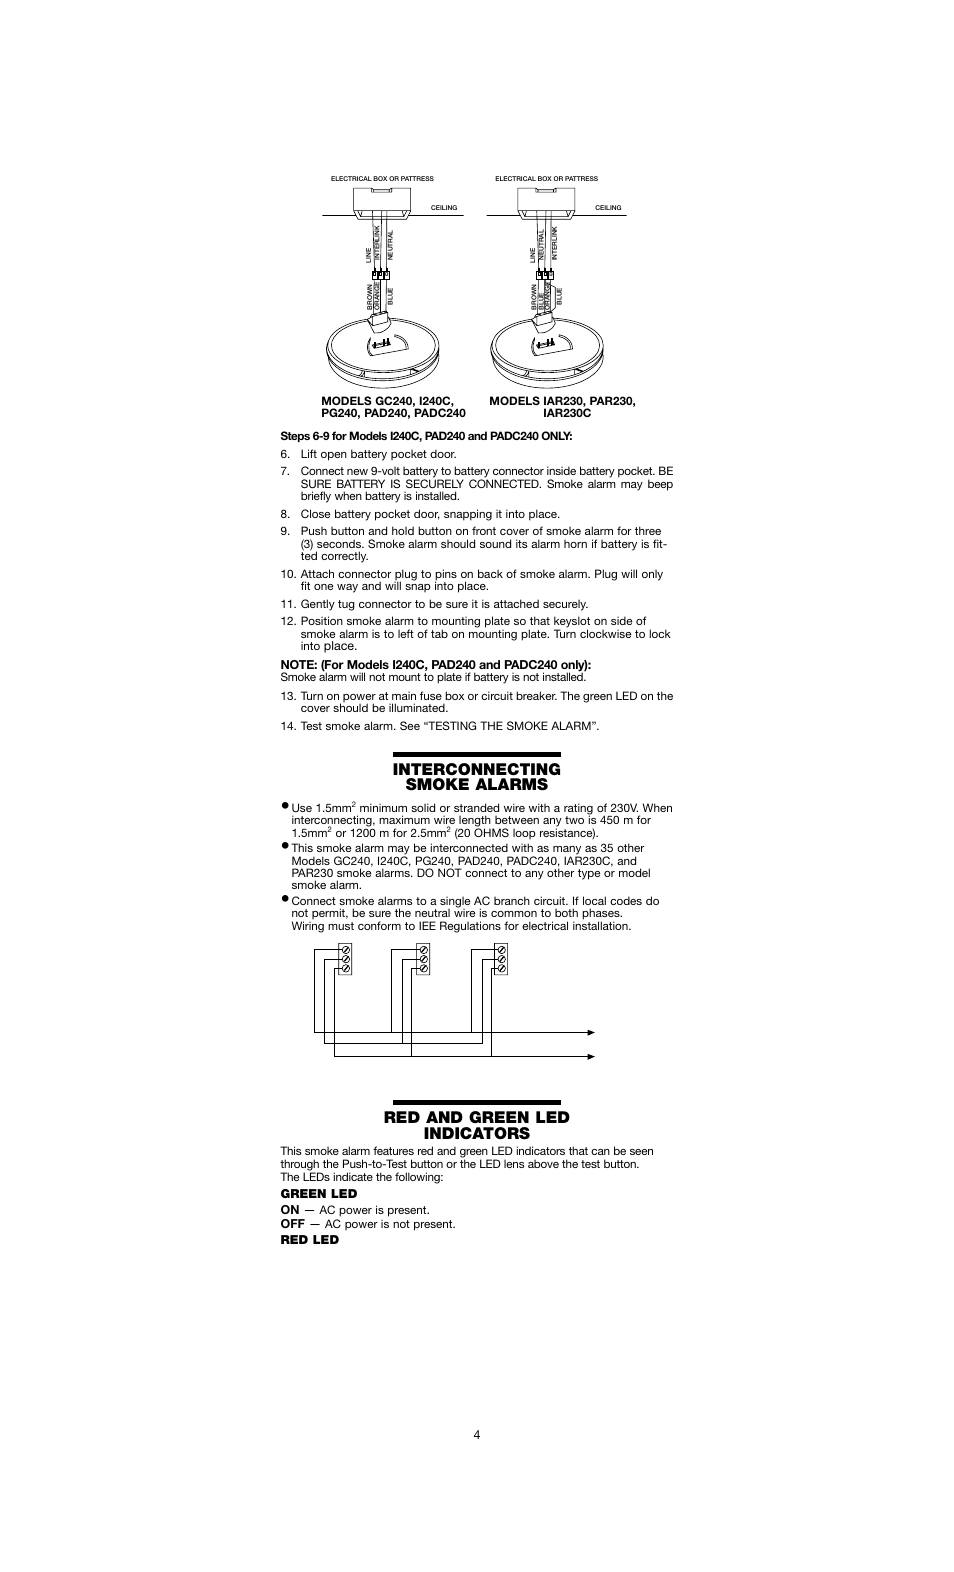 Interconnecting smoke alarms, Red and green led indicators | Firex I240C  User Manual | Page 4 / 8